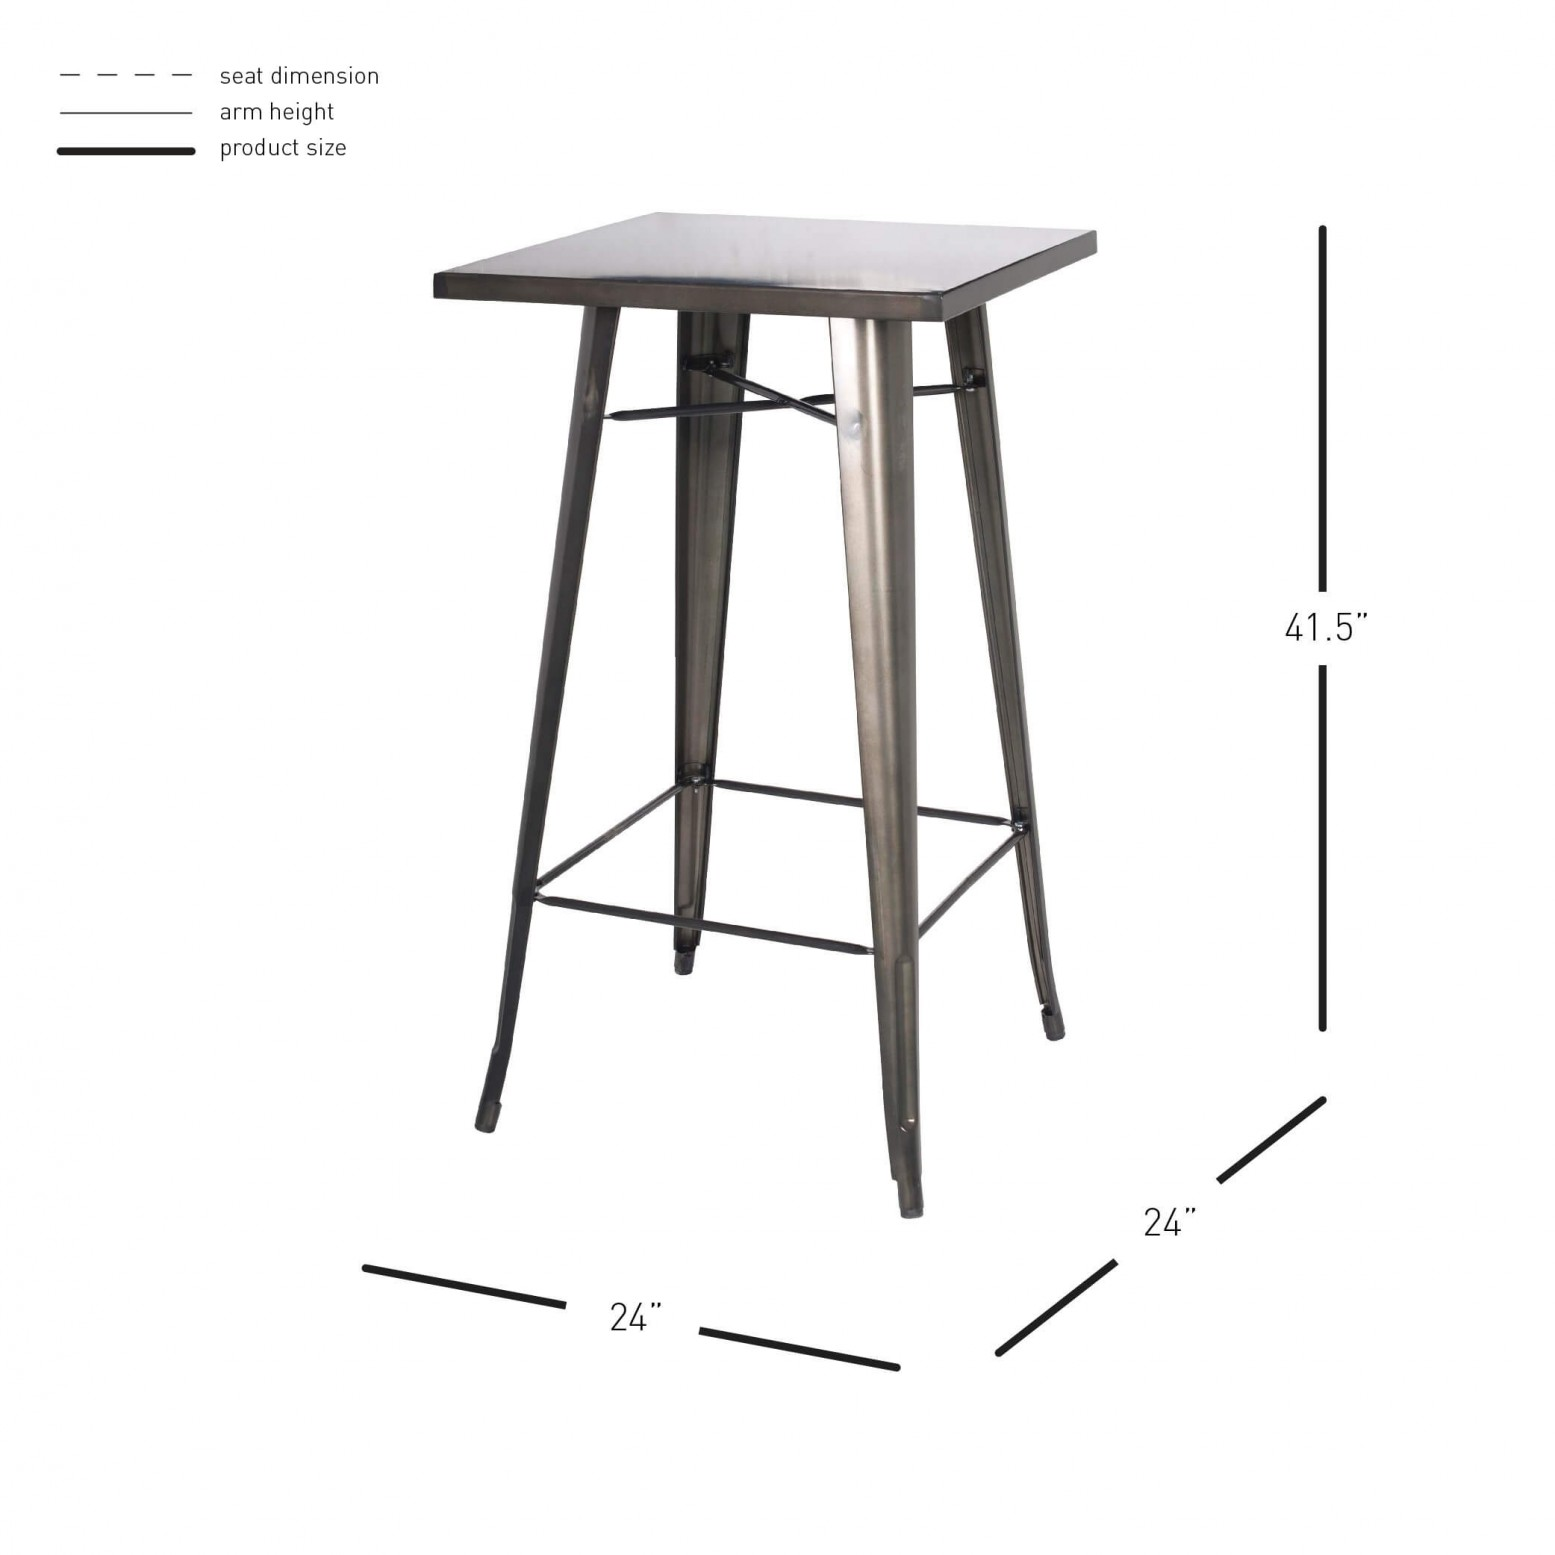 Groovy Metropolis Kd Metal Bar Table Caraccident5 Cool Chair Designs And Ideas Caraccident5Info